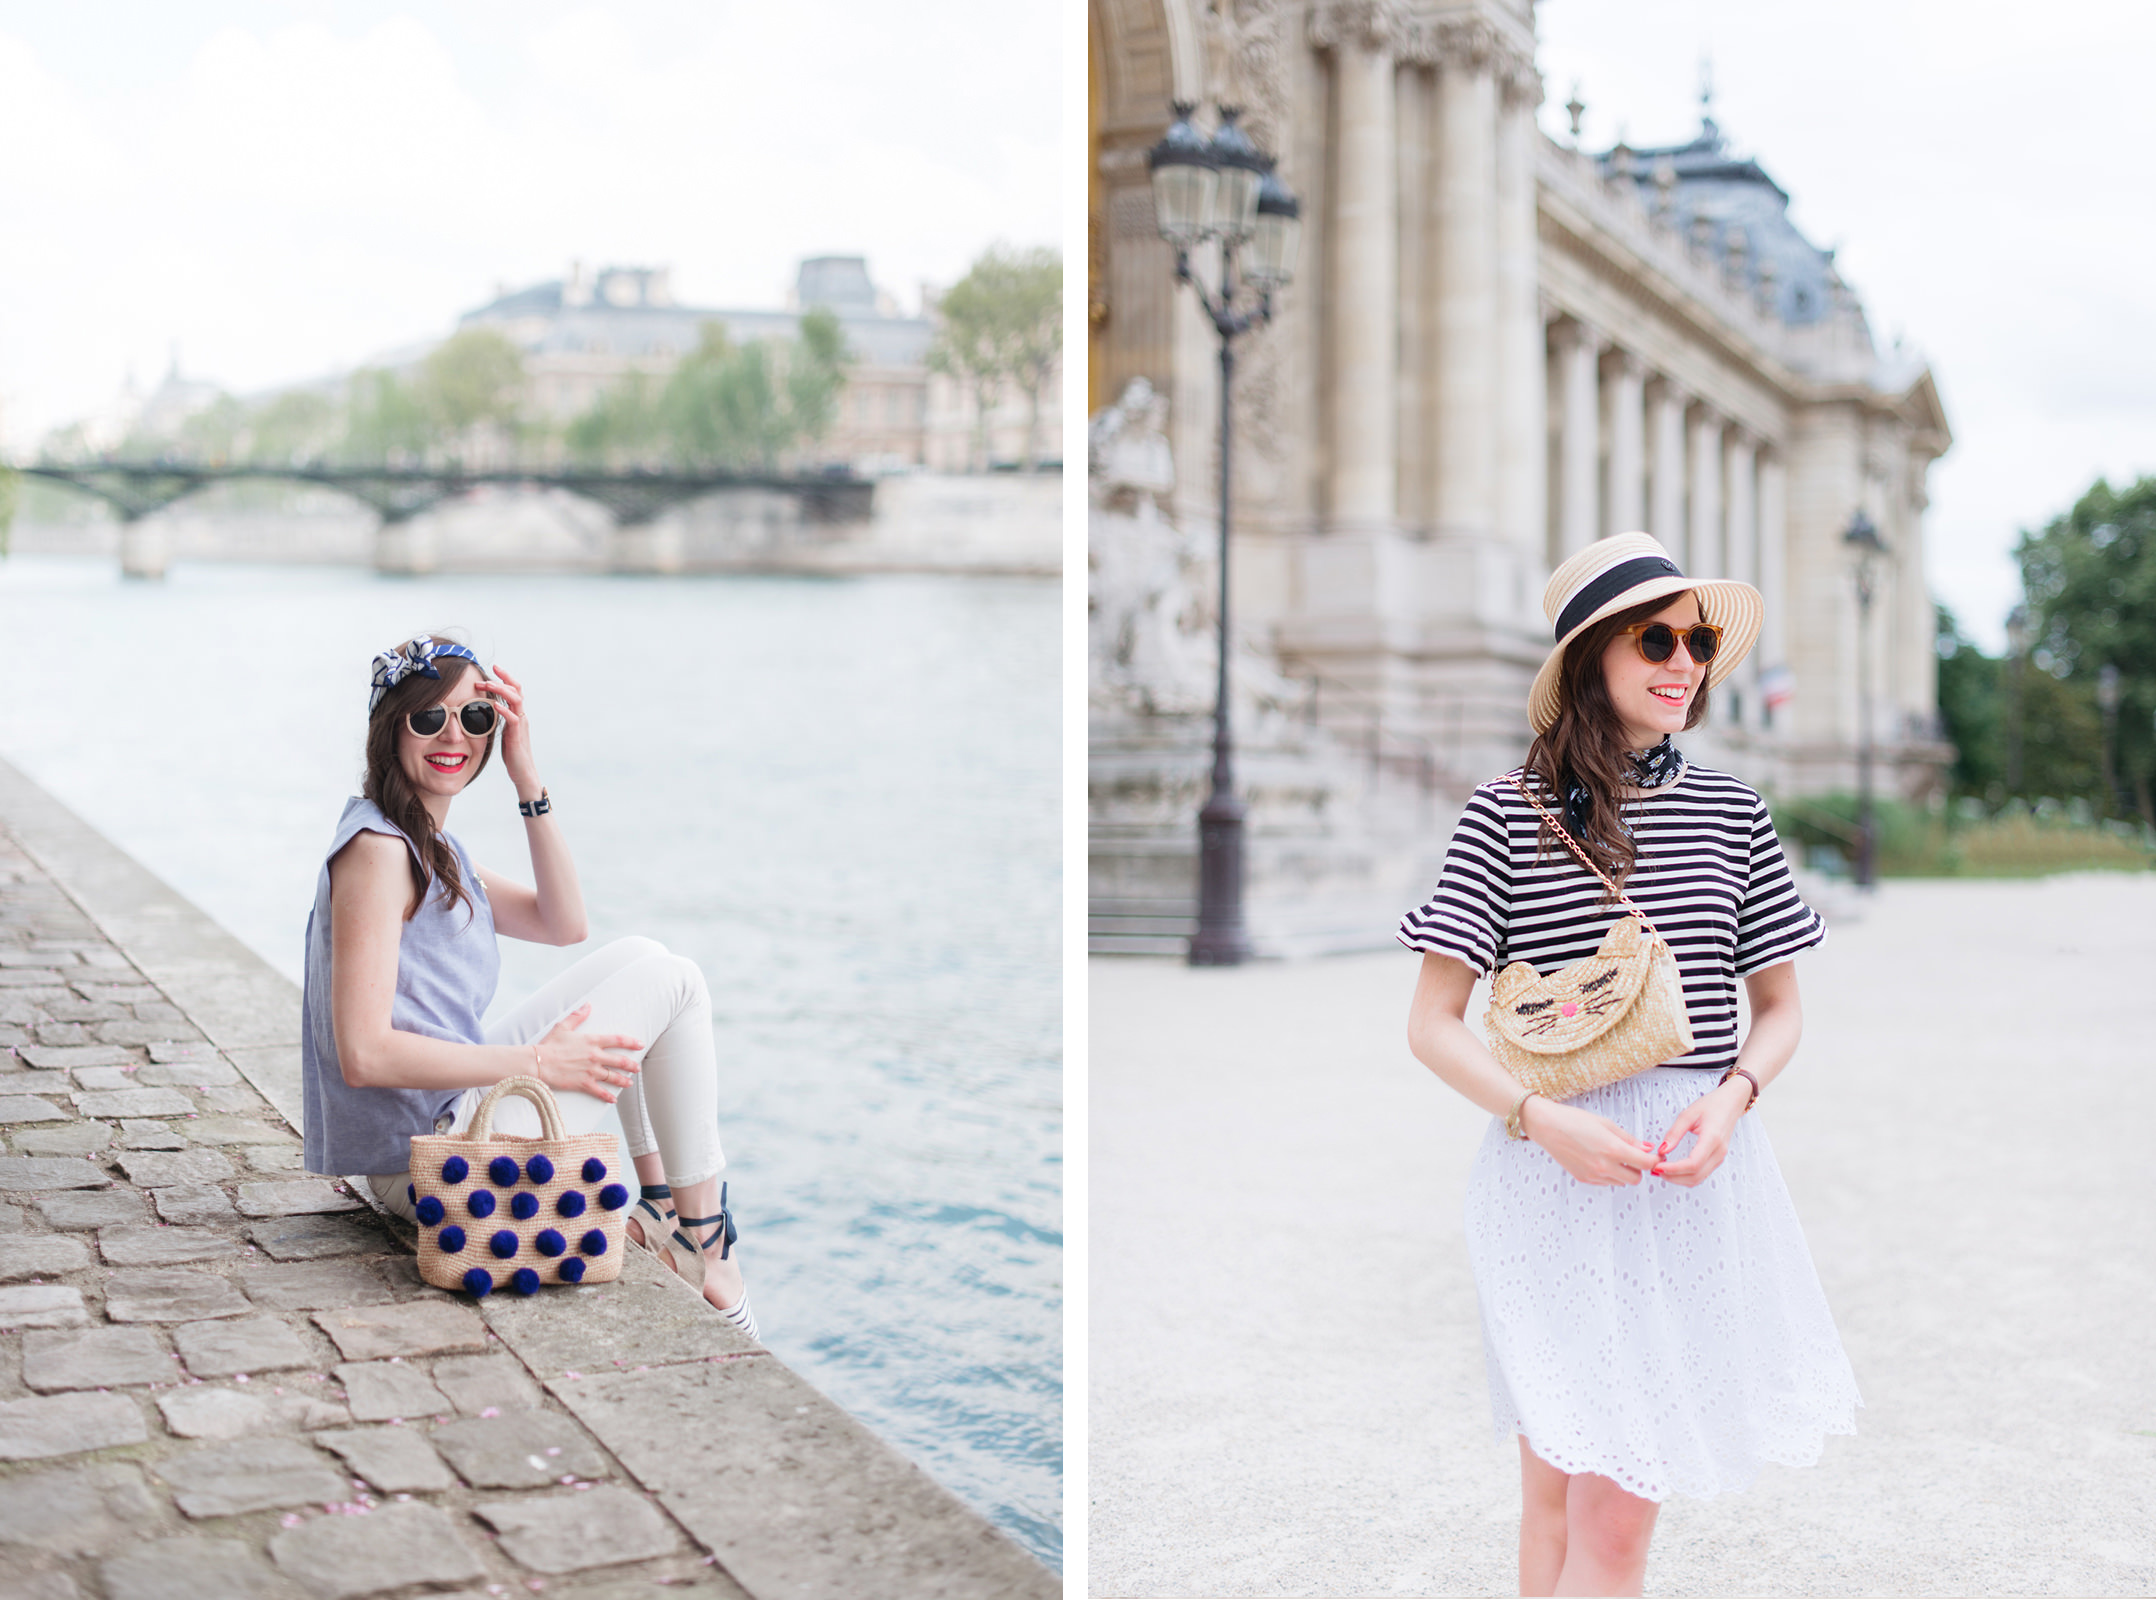 Blog-Mode-And-The-City-Lifestyle-33-paniers-printemps-ete-3 copie